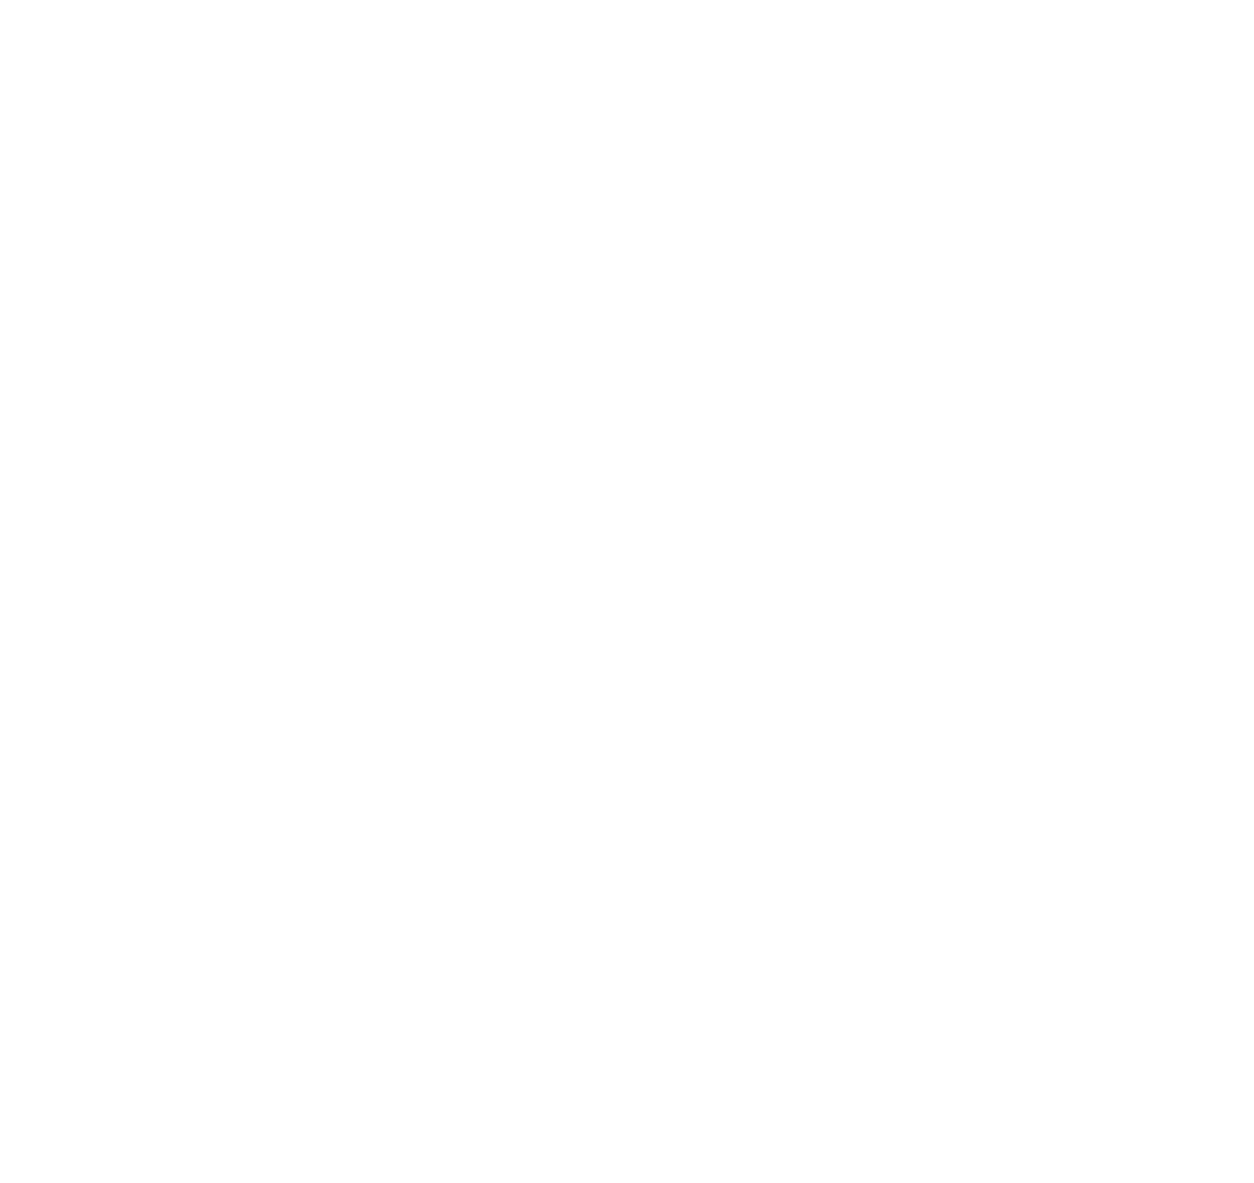 City of Champaign GIS